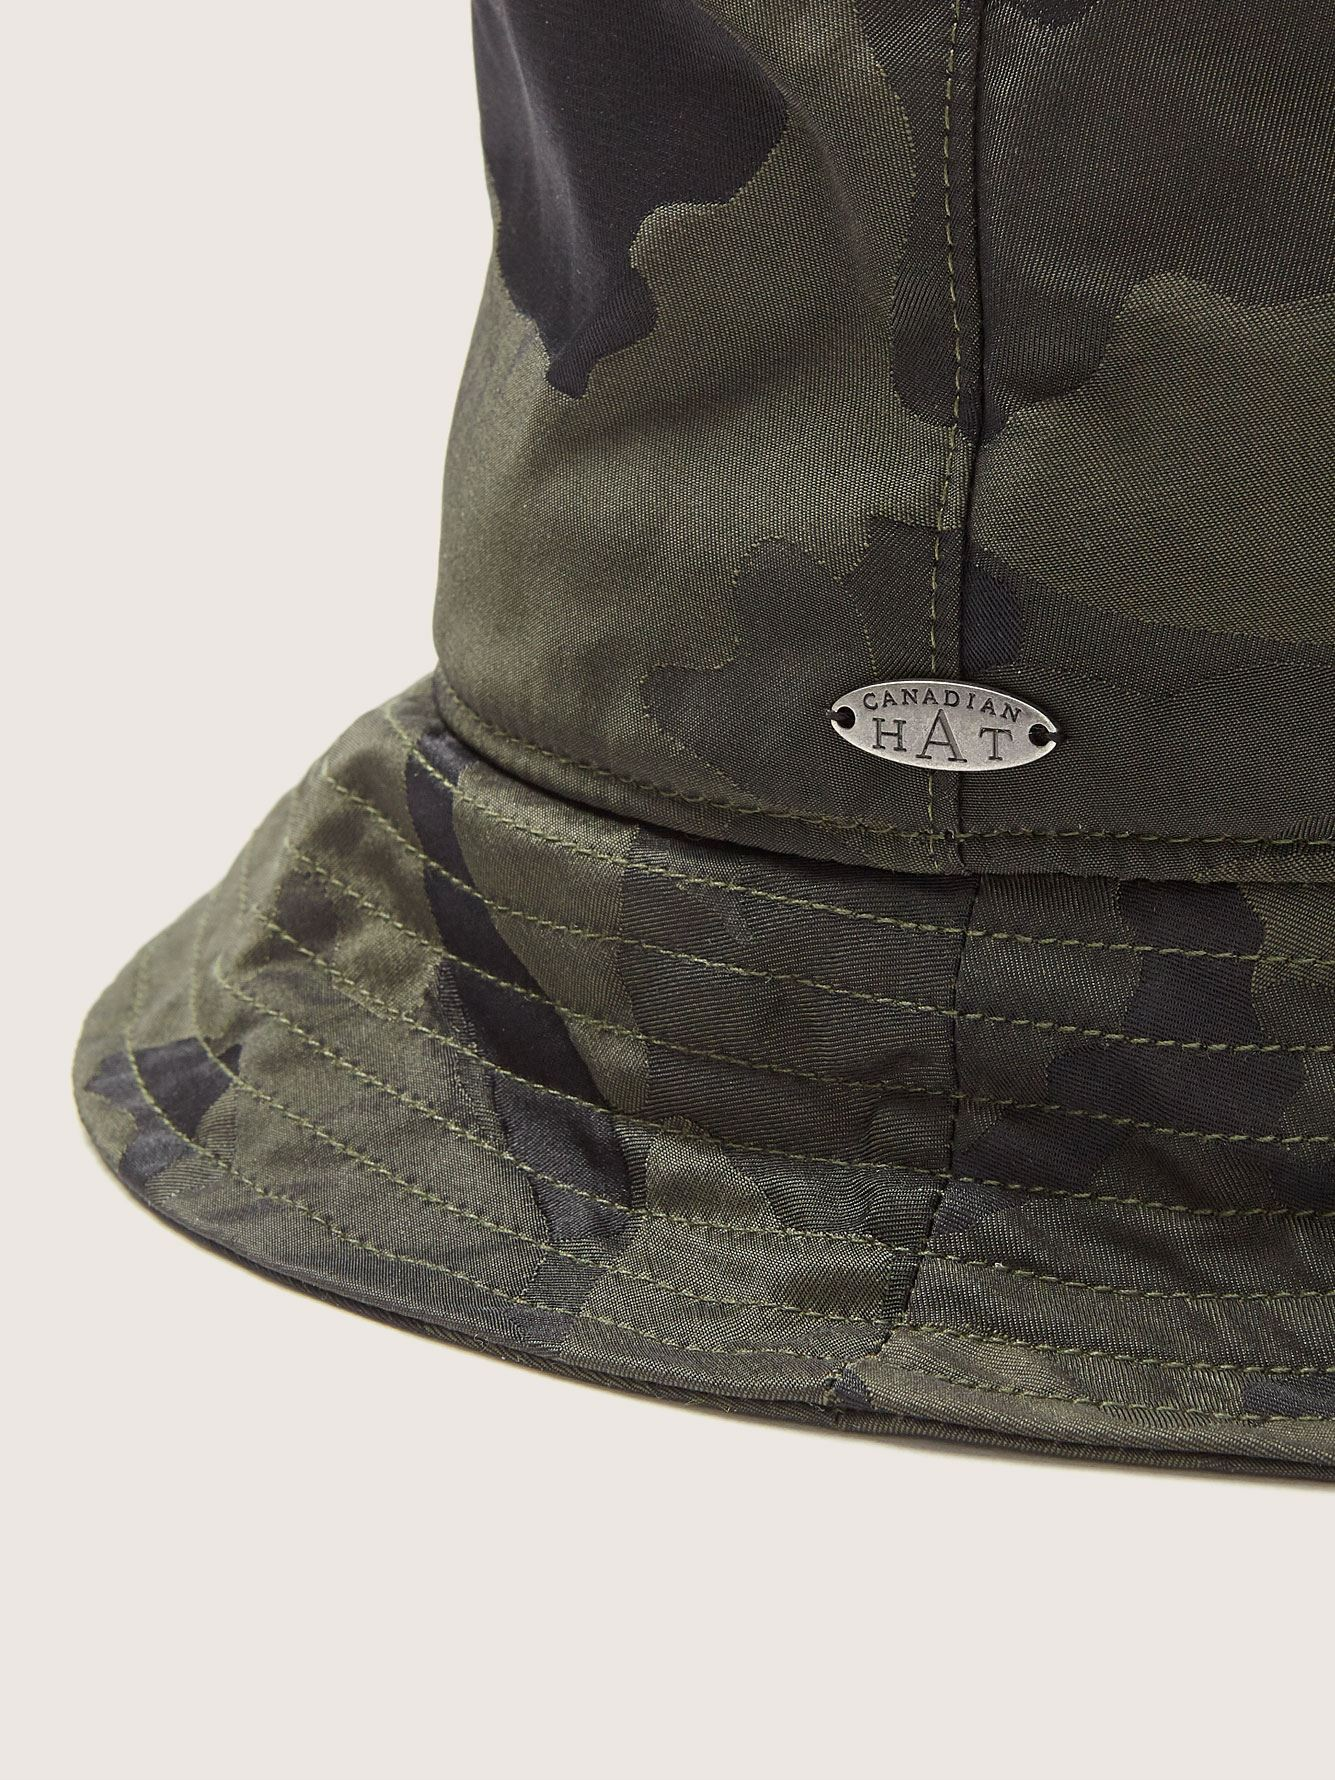 Camo Bucket Hat - Canadian Hat